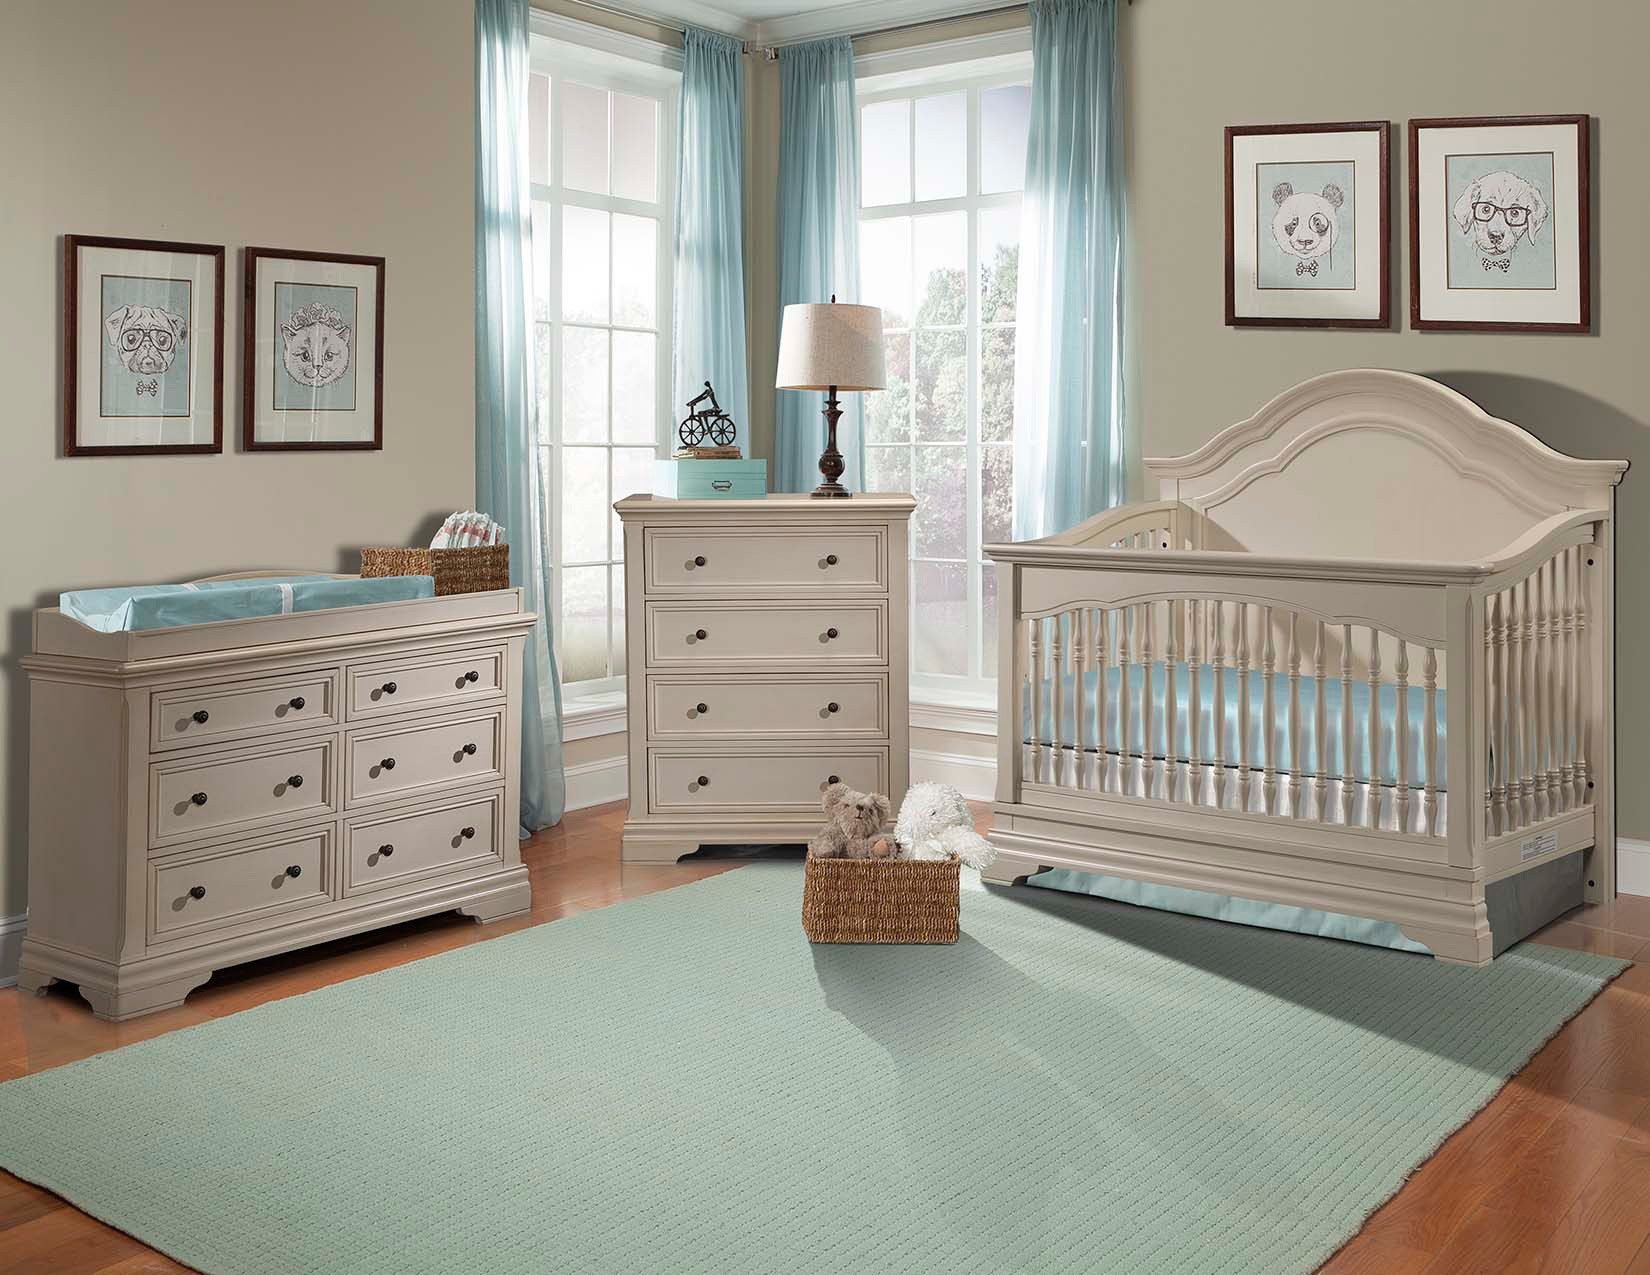 baby nursery furniture baby furniture sets stella baby and child athena 3 piece nursery set GWHWZCE